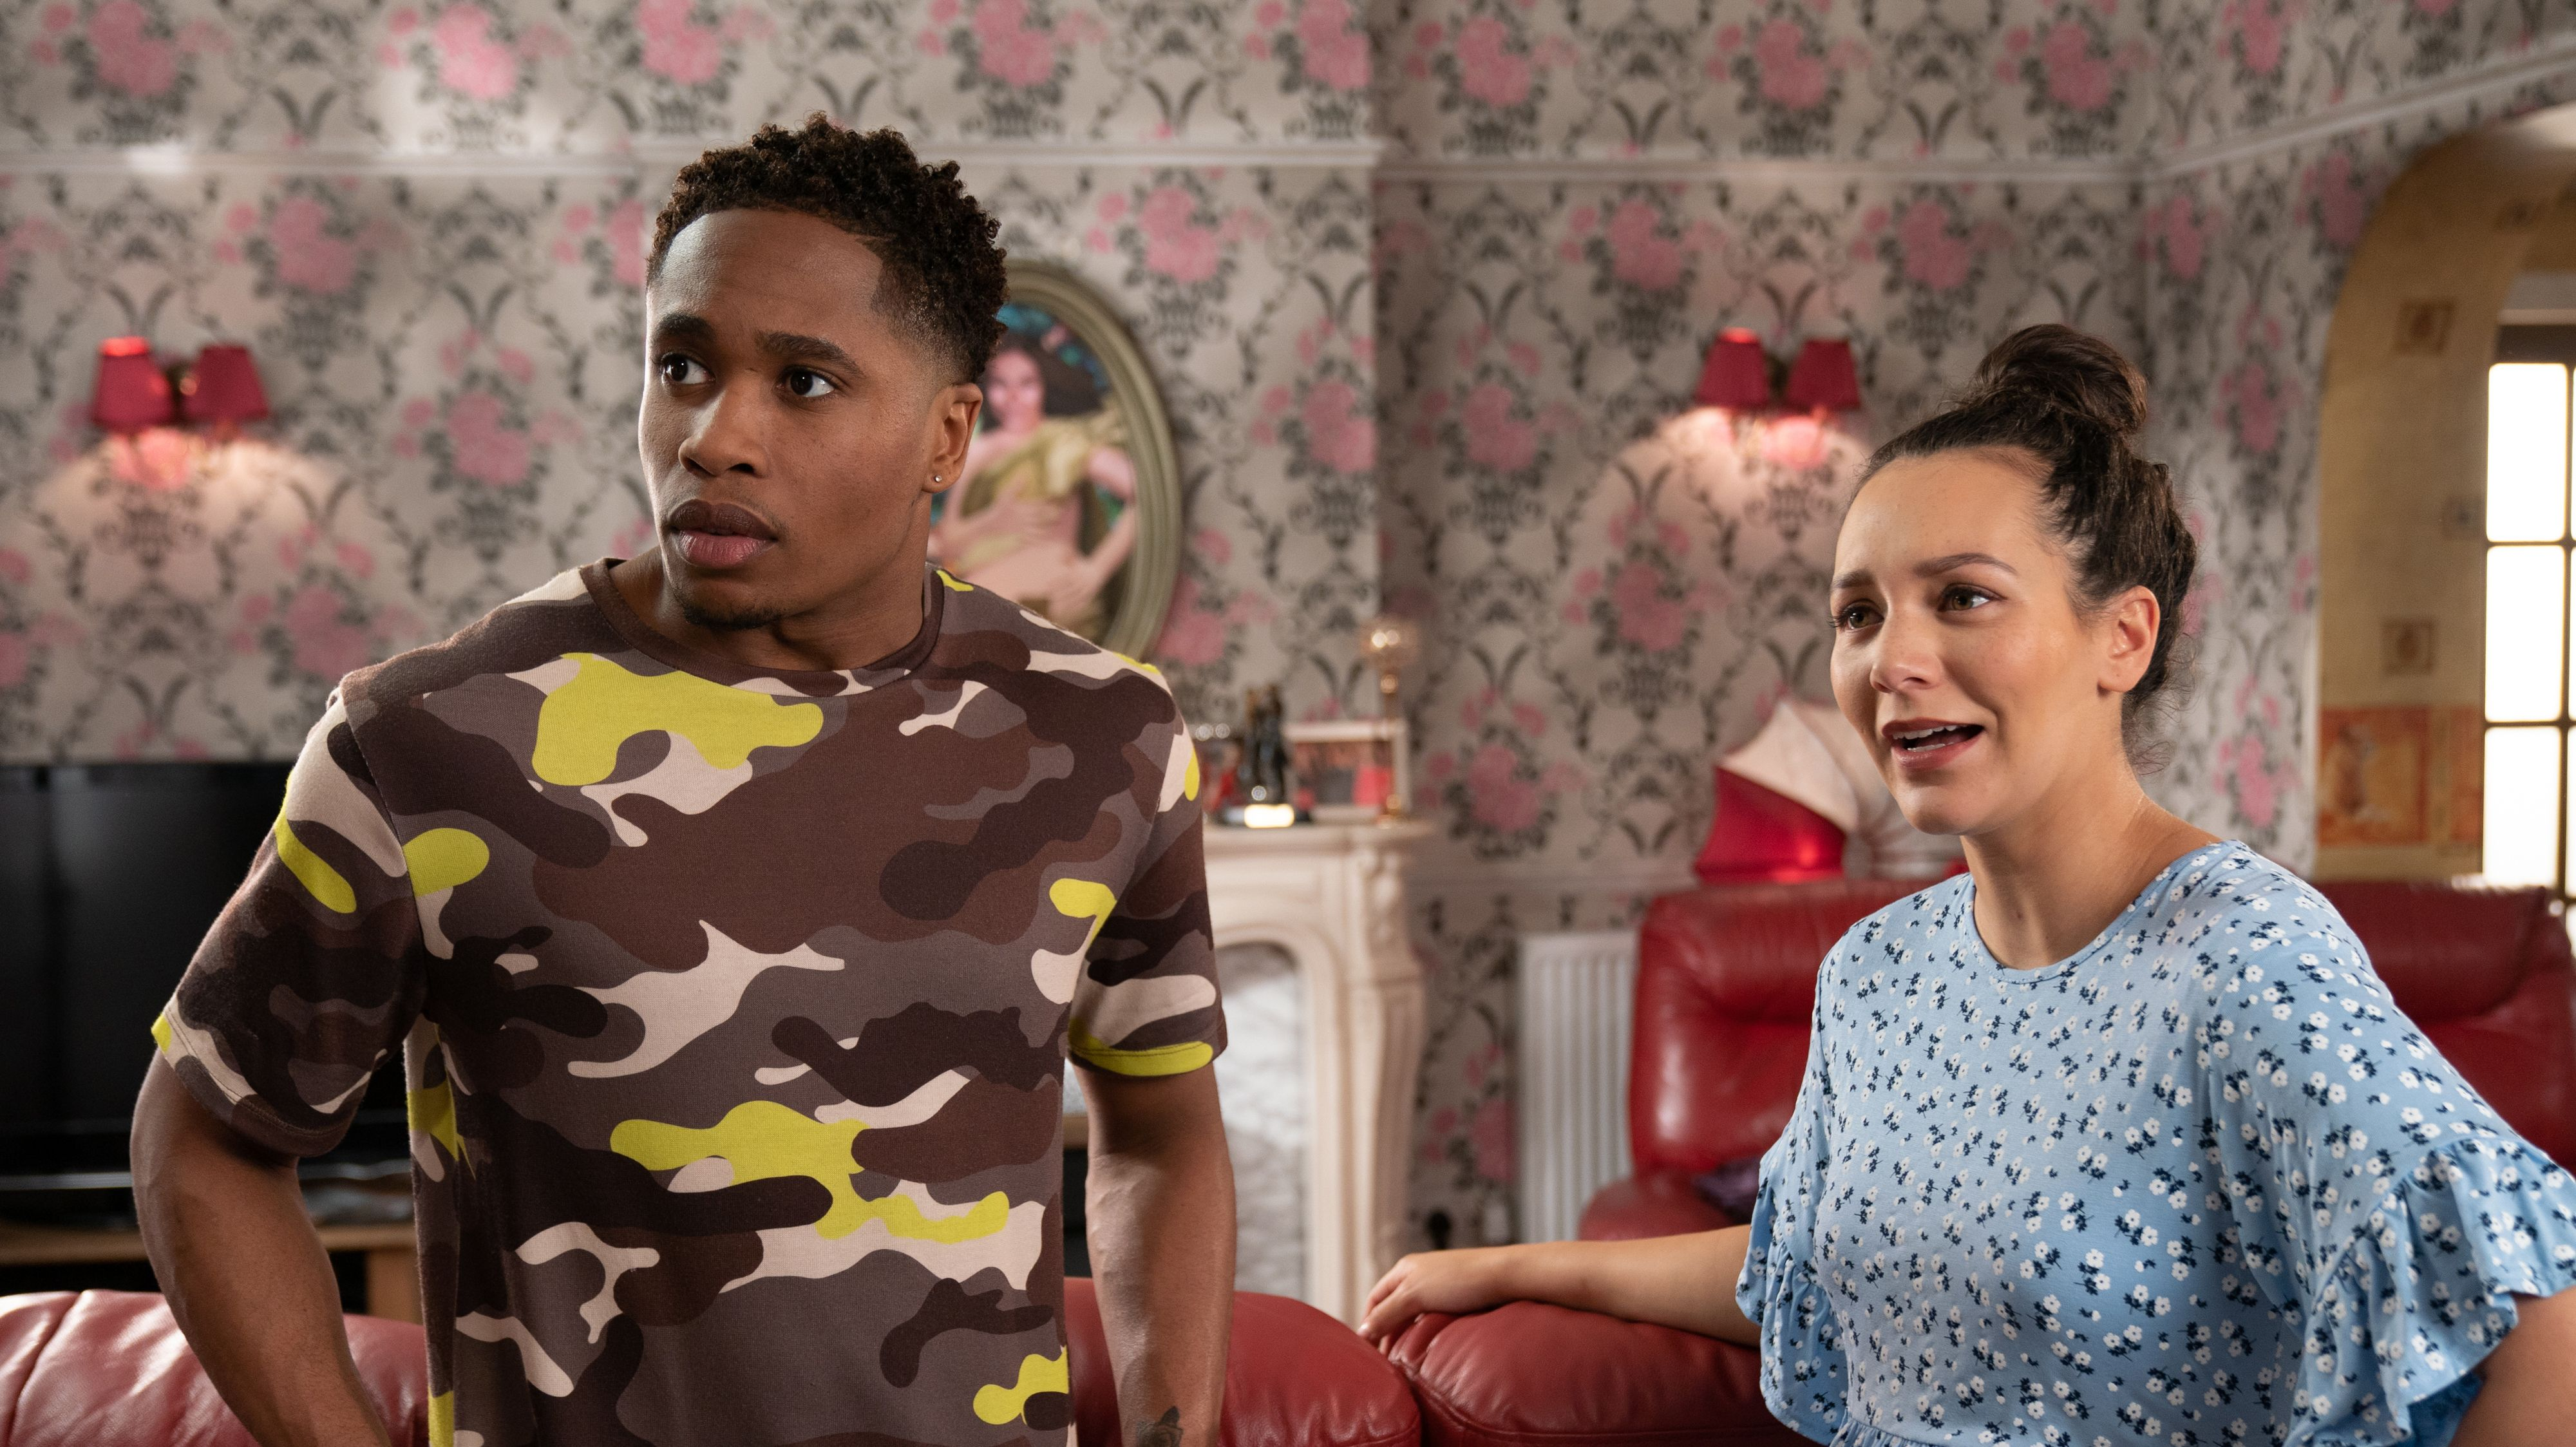 Hollyoaks: Cleo McQueen faces new struggles in 9 spoiler pictures